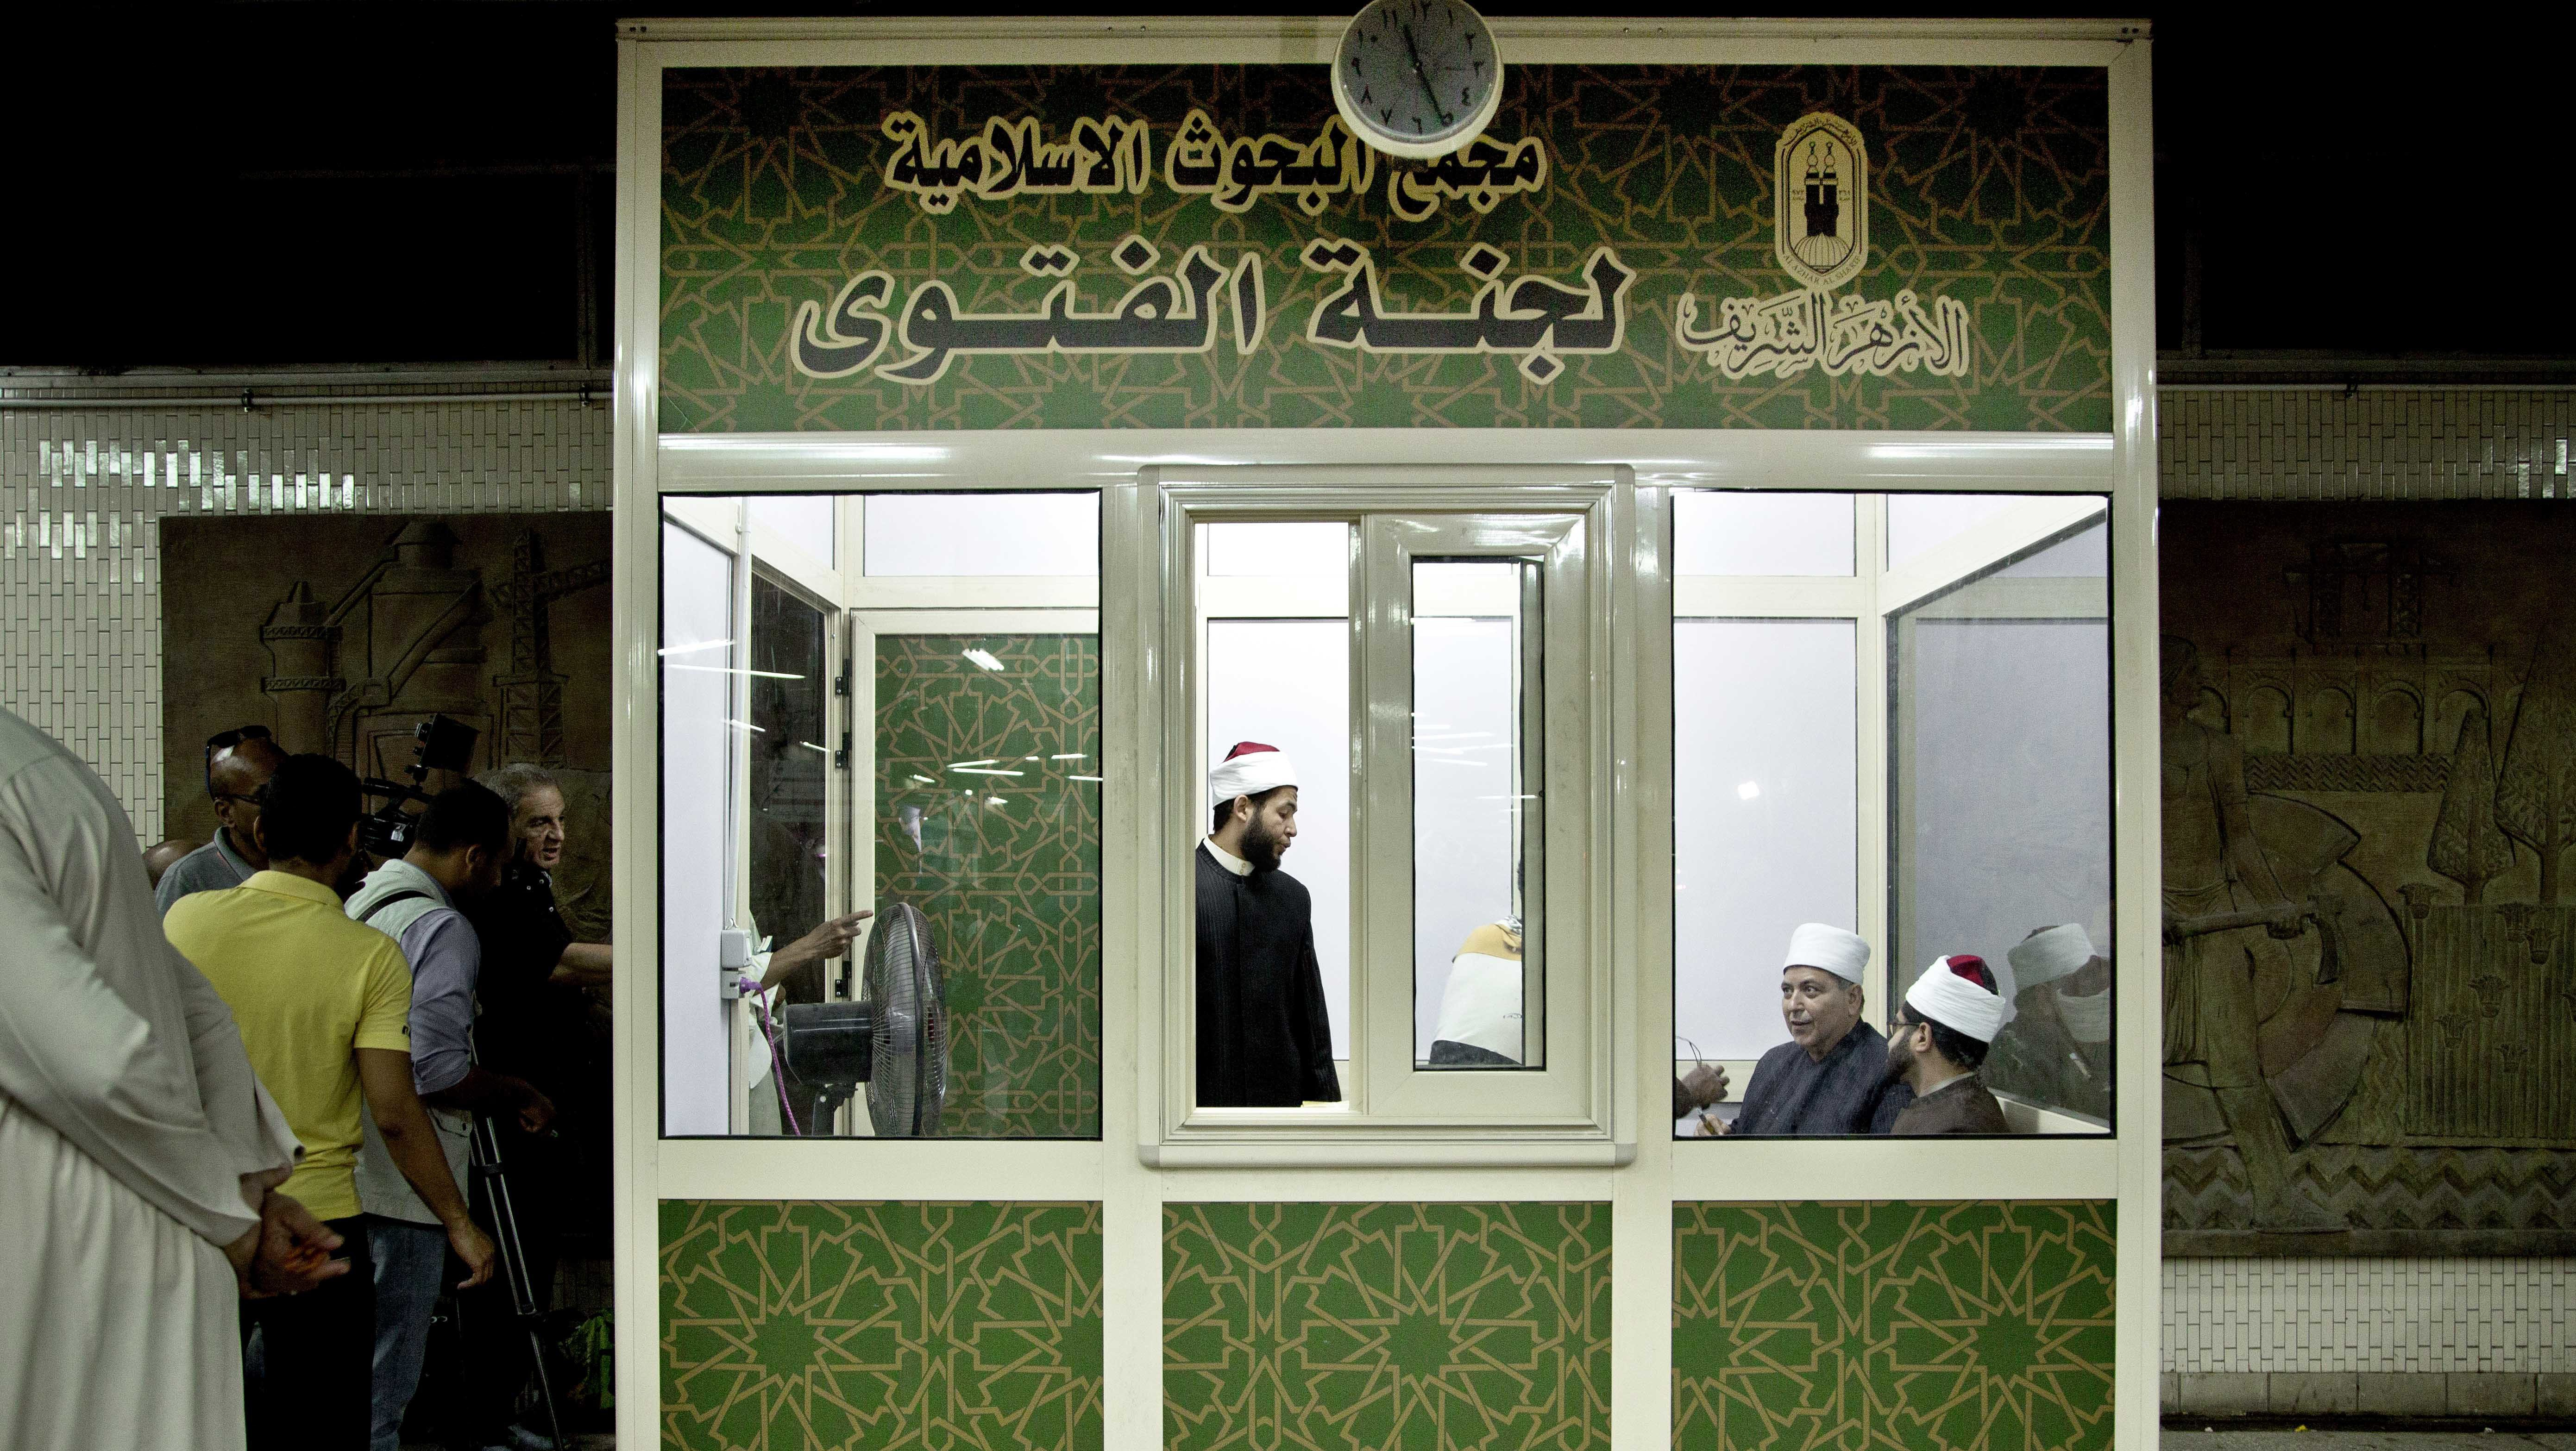 Al-Azhar clerics wait to answer commuters questions inside a Fatwa Kiosk, at the Al Shohada'a metro station, in Cairo, Egypt, Tuesday, July 25, 2017. Al-Azhar, the Sunni Muslim world's foremost religious institution, has set up booths in Cairo metro stations to provide religious edicts to commuters in the latest bid to dispel religious misconceptions seen as fostering Islamic militancy in the country, which is targeting mainly security personnel and Christians.